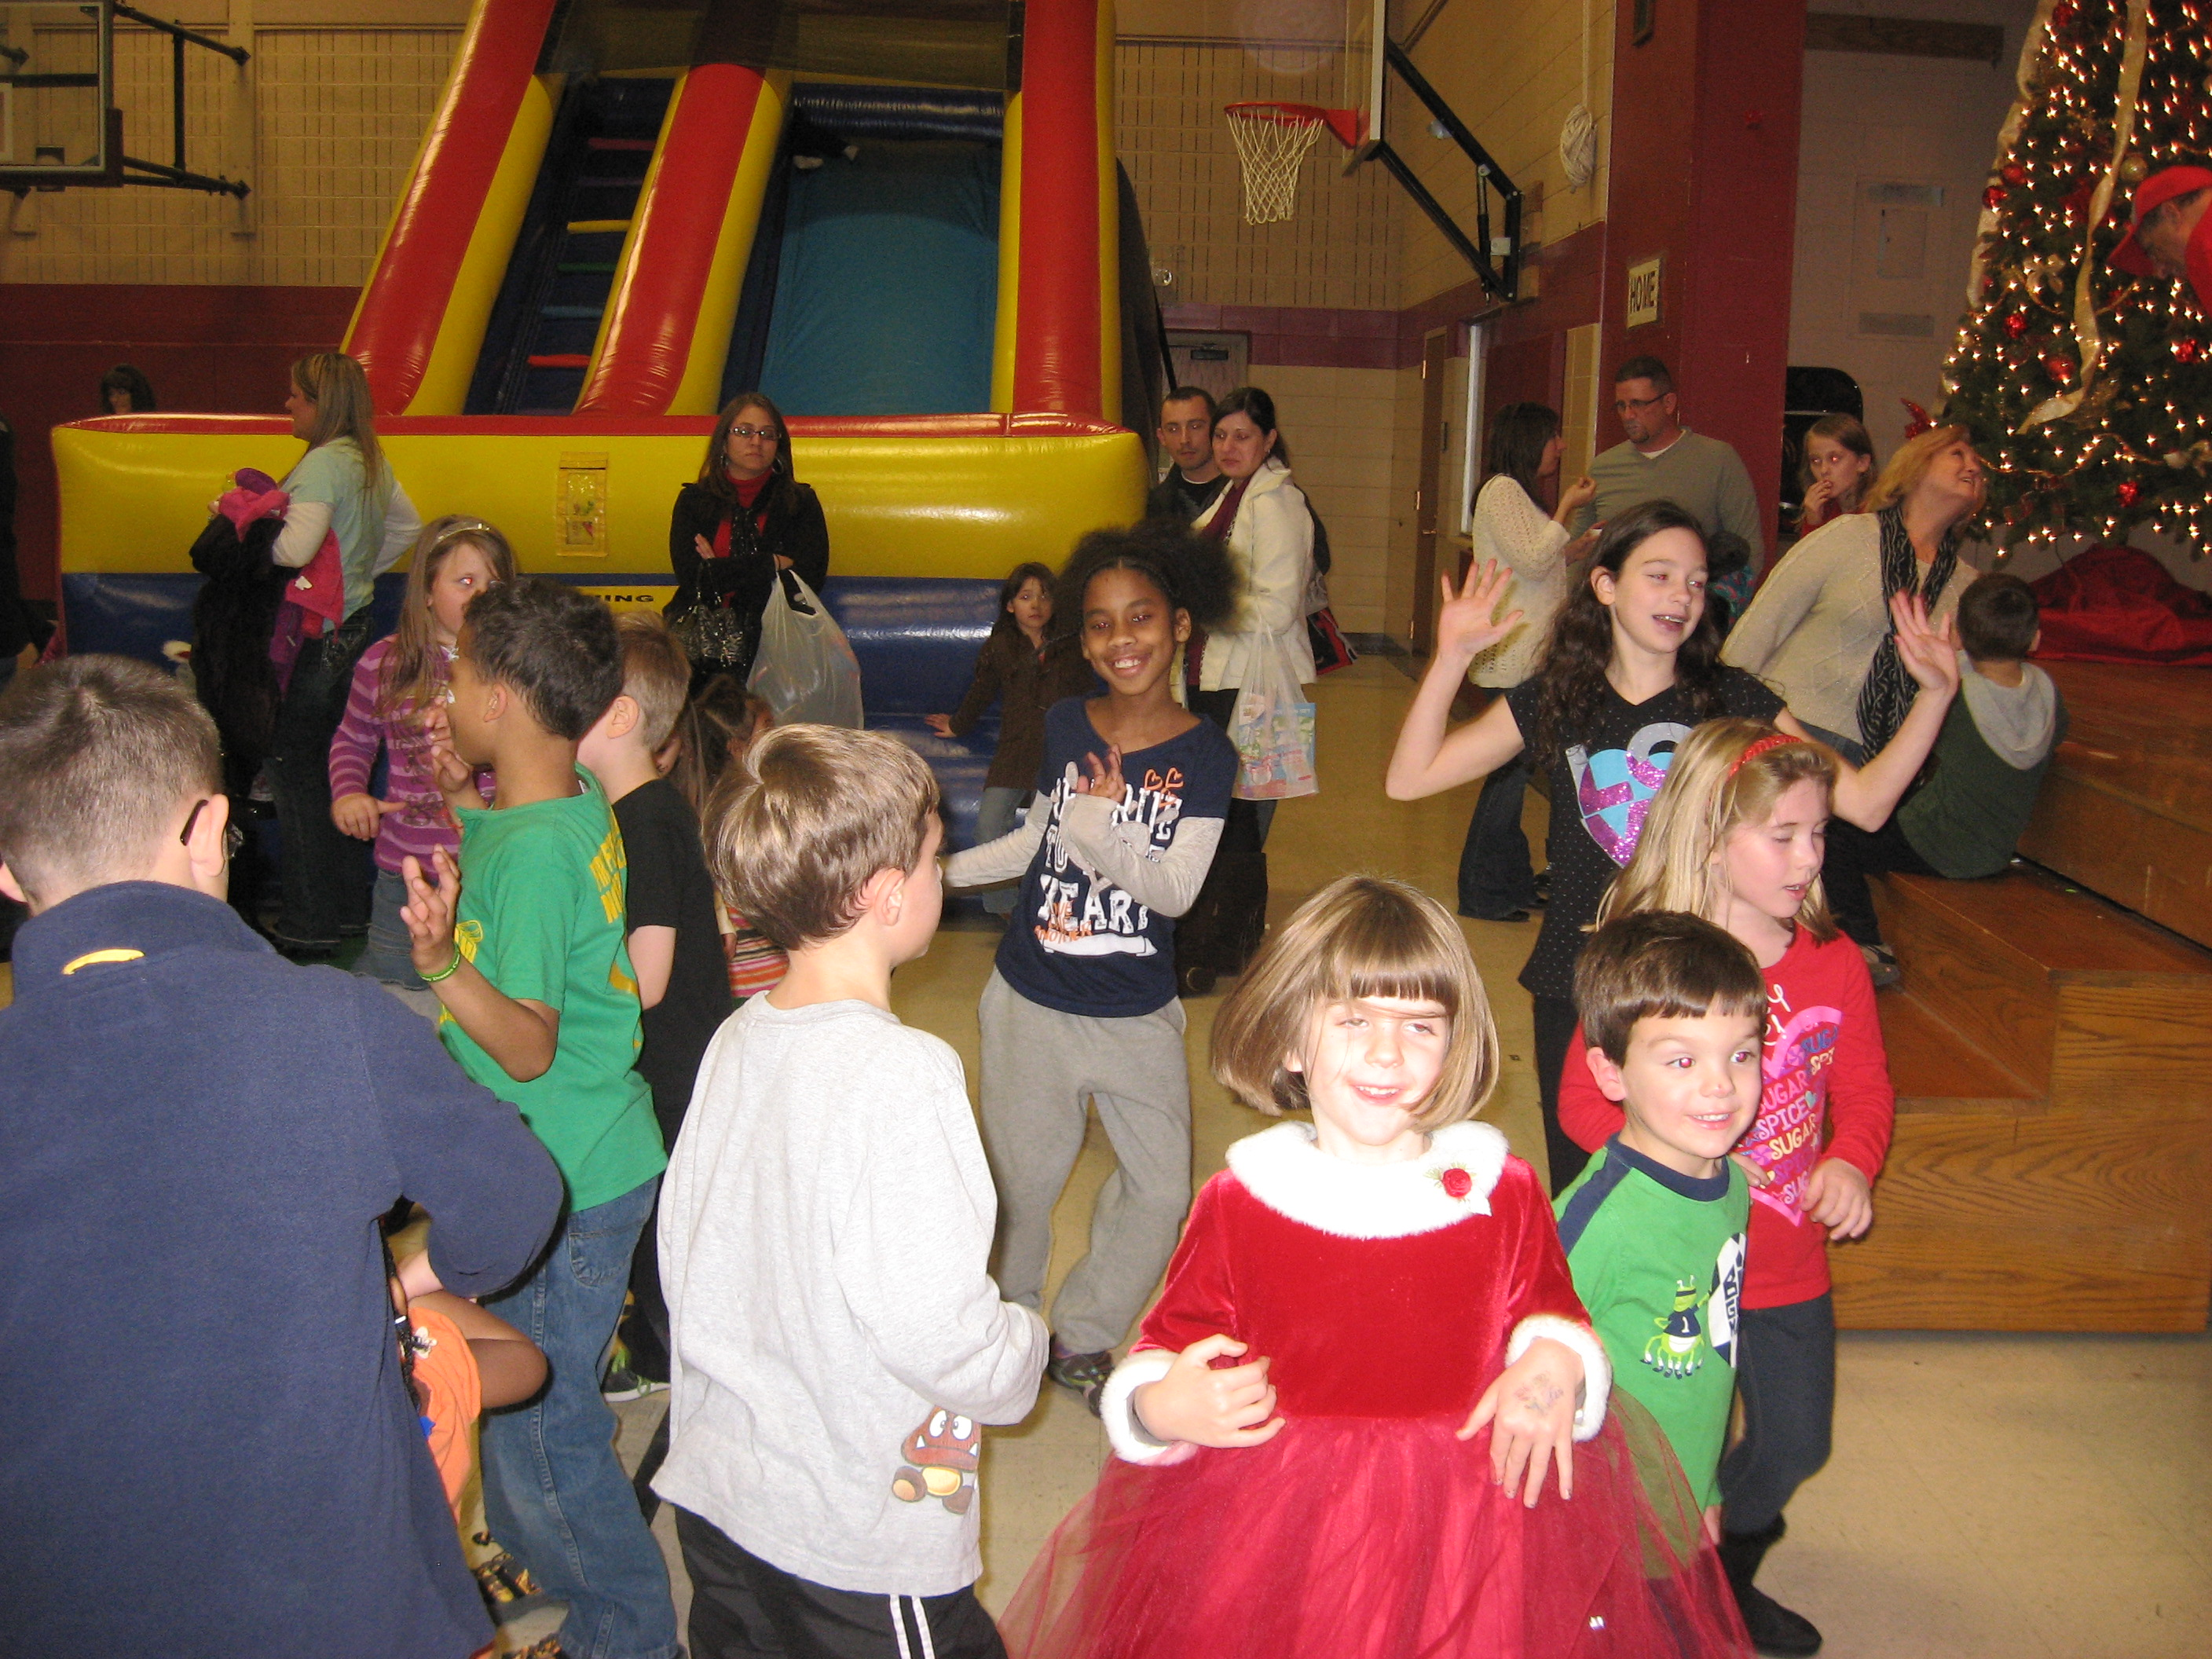 Children dancing at a Christmas Party